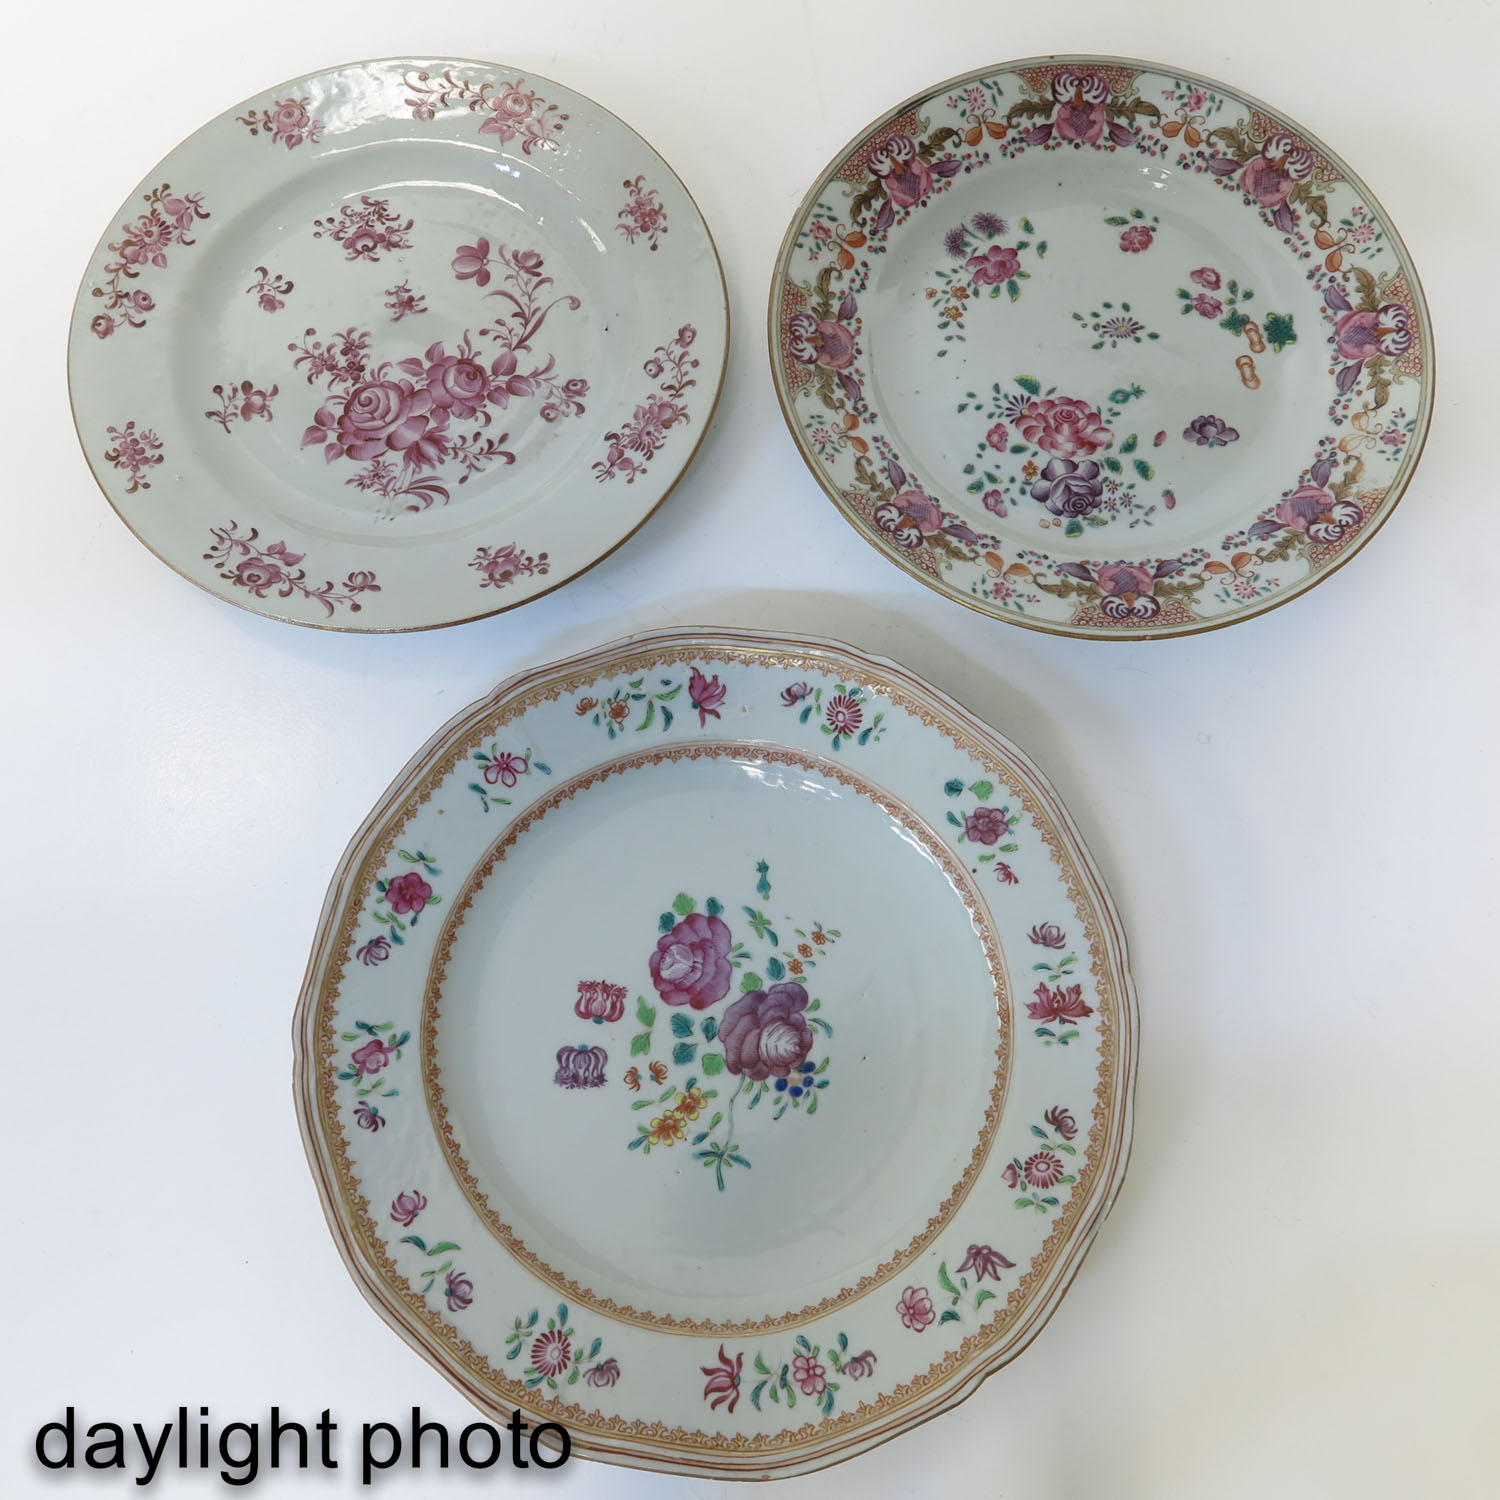 A Collection of 5 Famille Rose Plates - Image 7 of 10